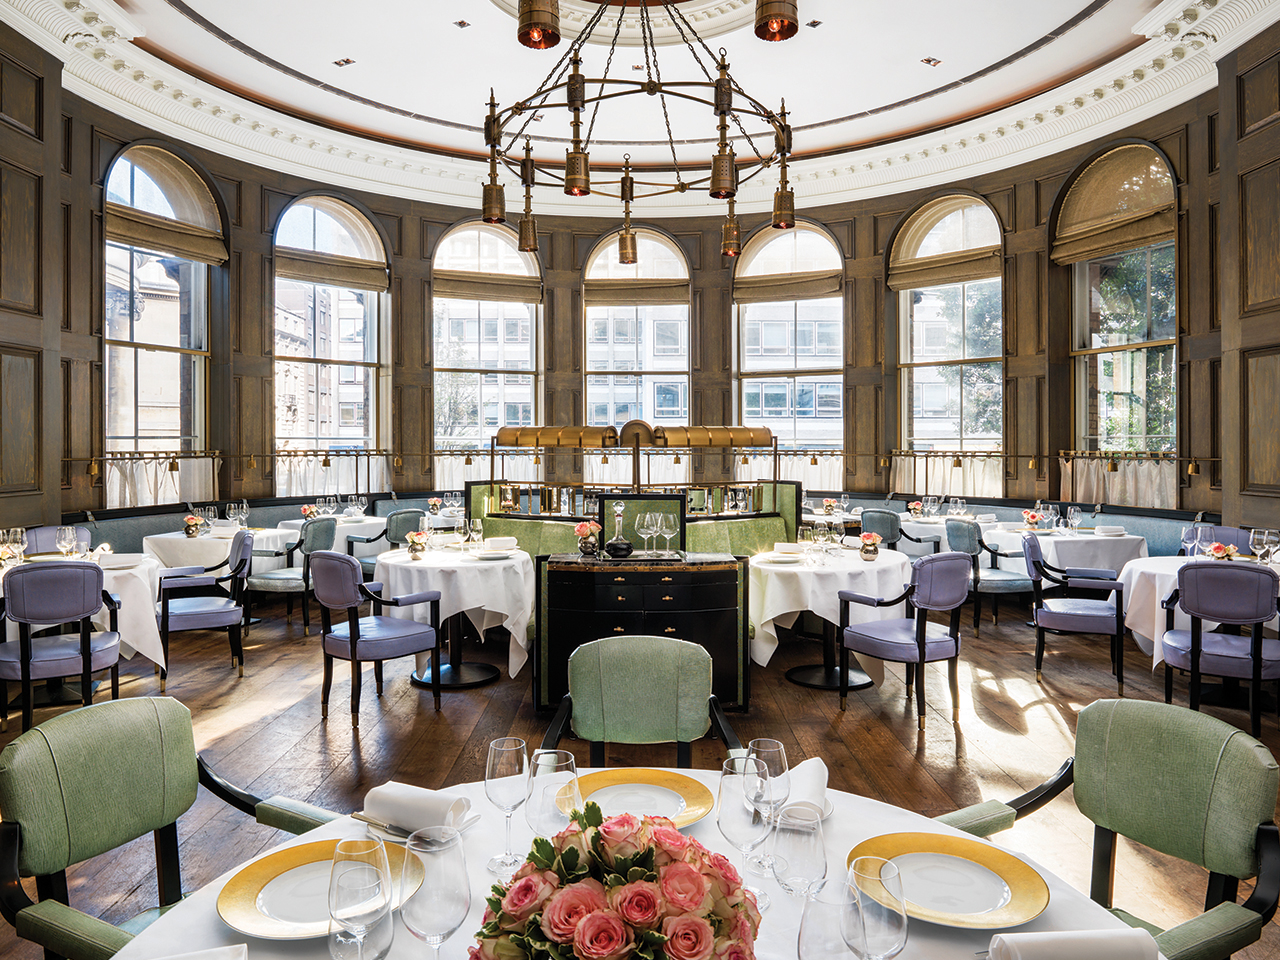 Listopedia: the Hotel Restaurant bucket list